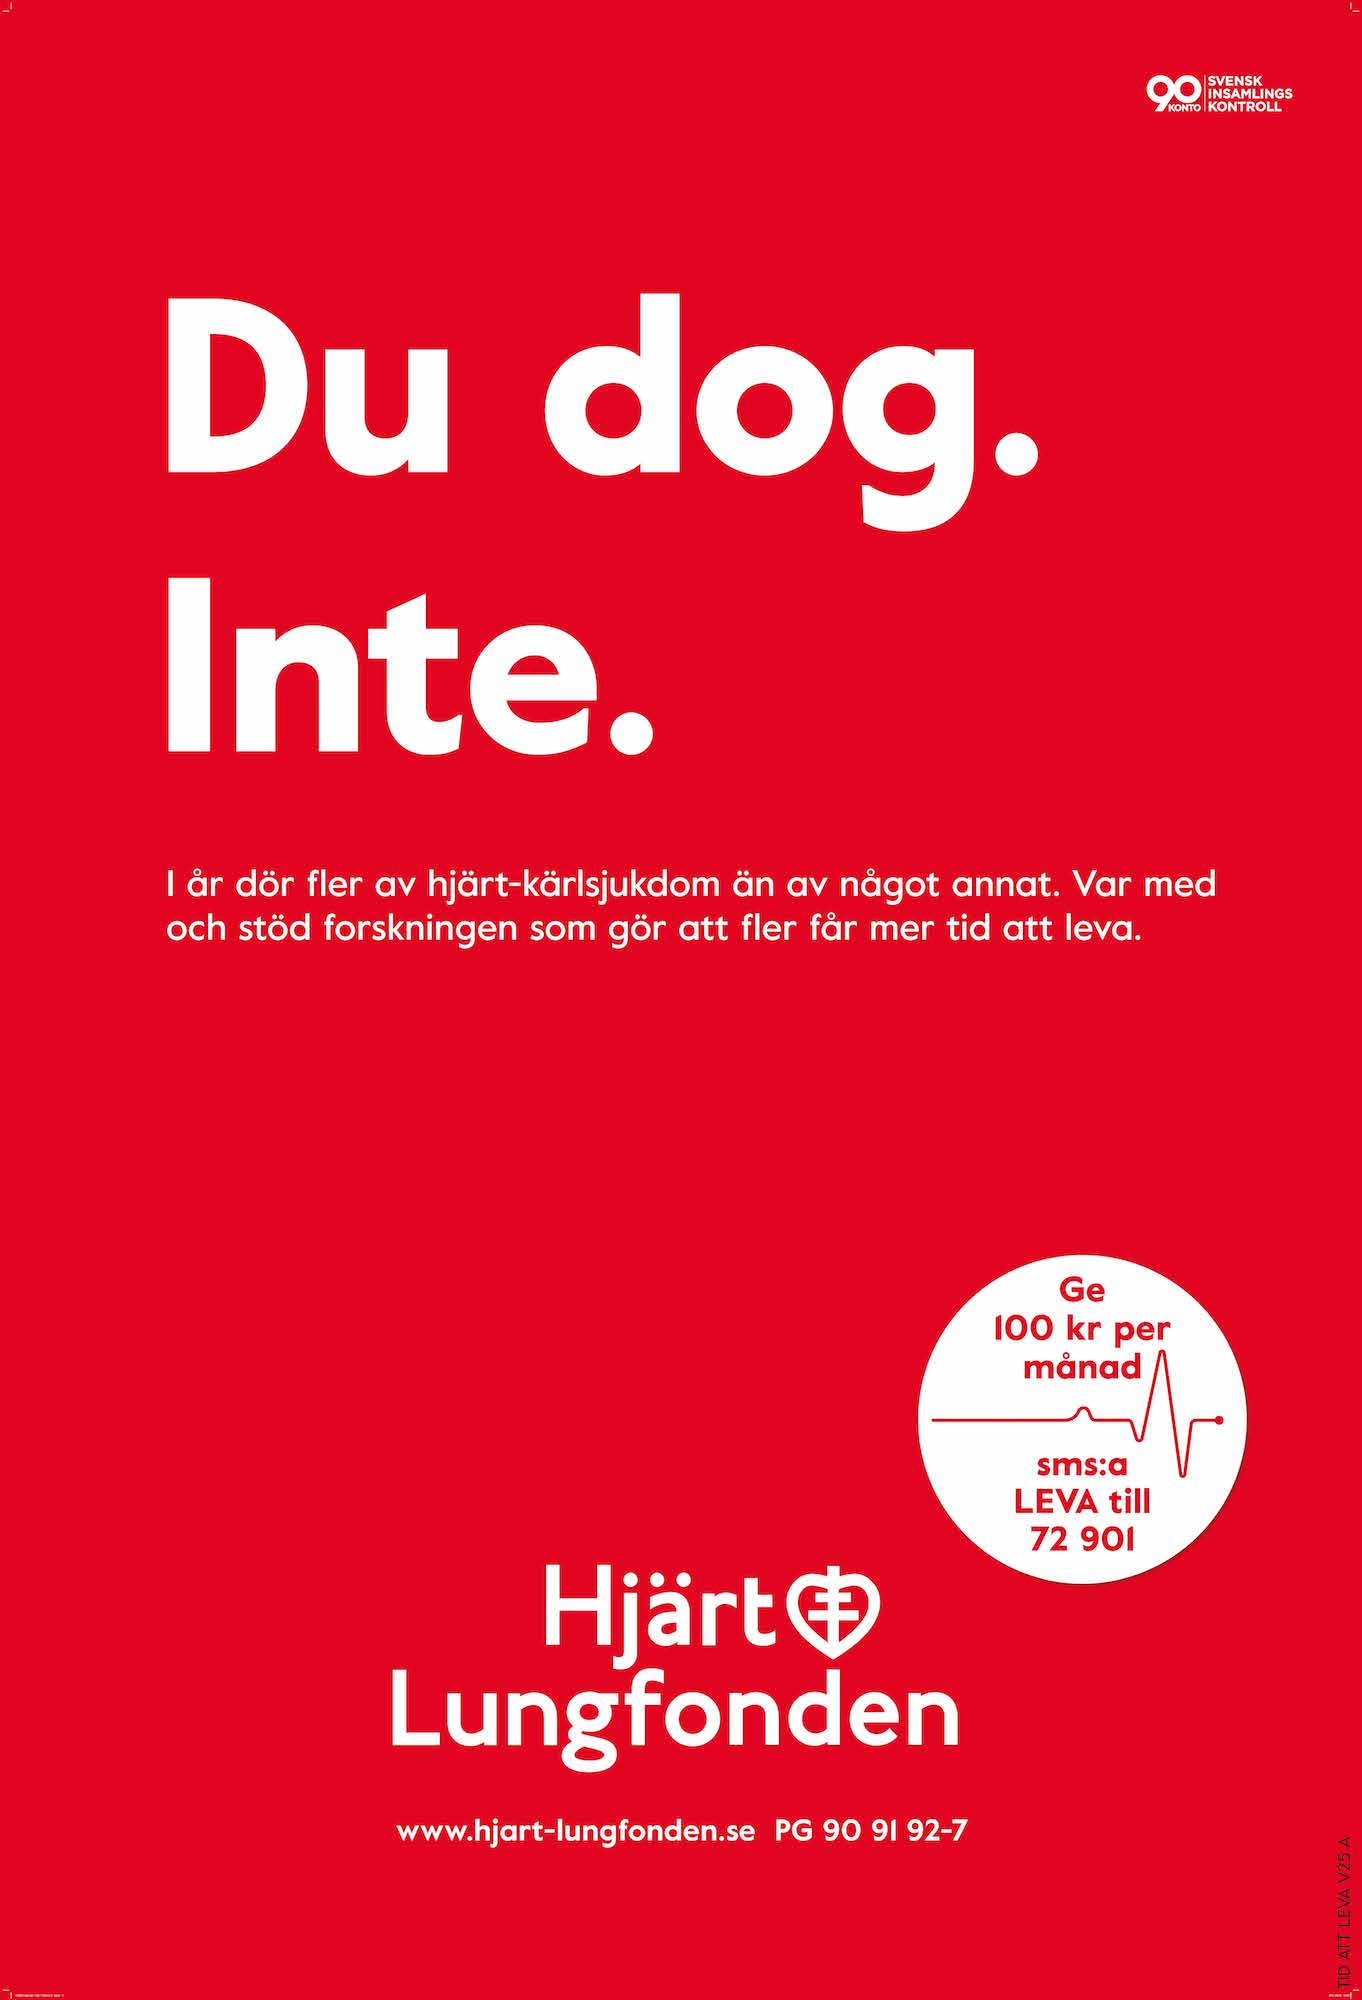 Hjärt-Lungfonden Outdoor Campaign | We Are ÖPPET